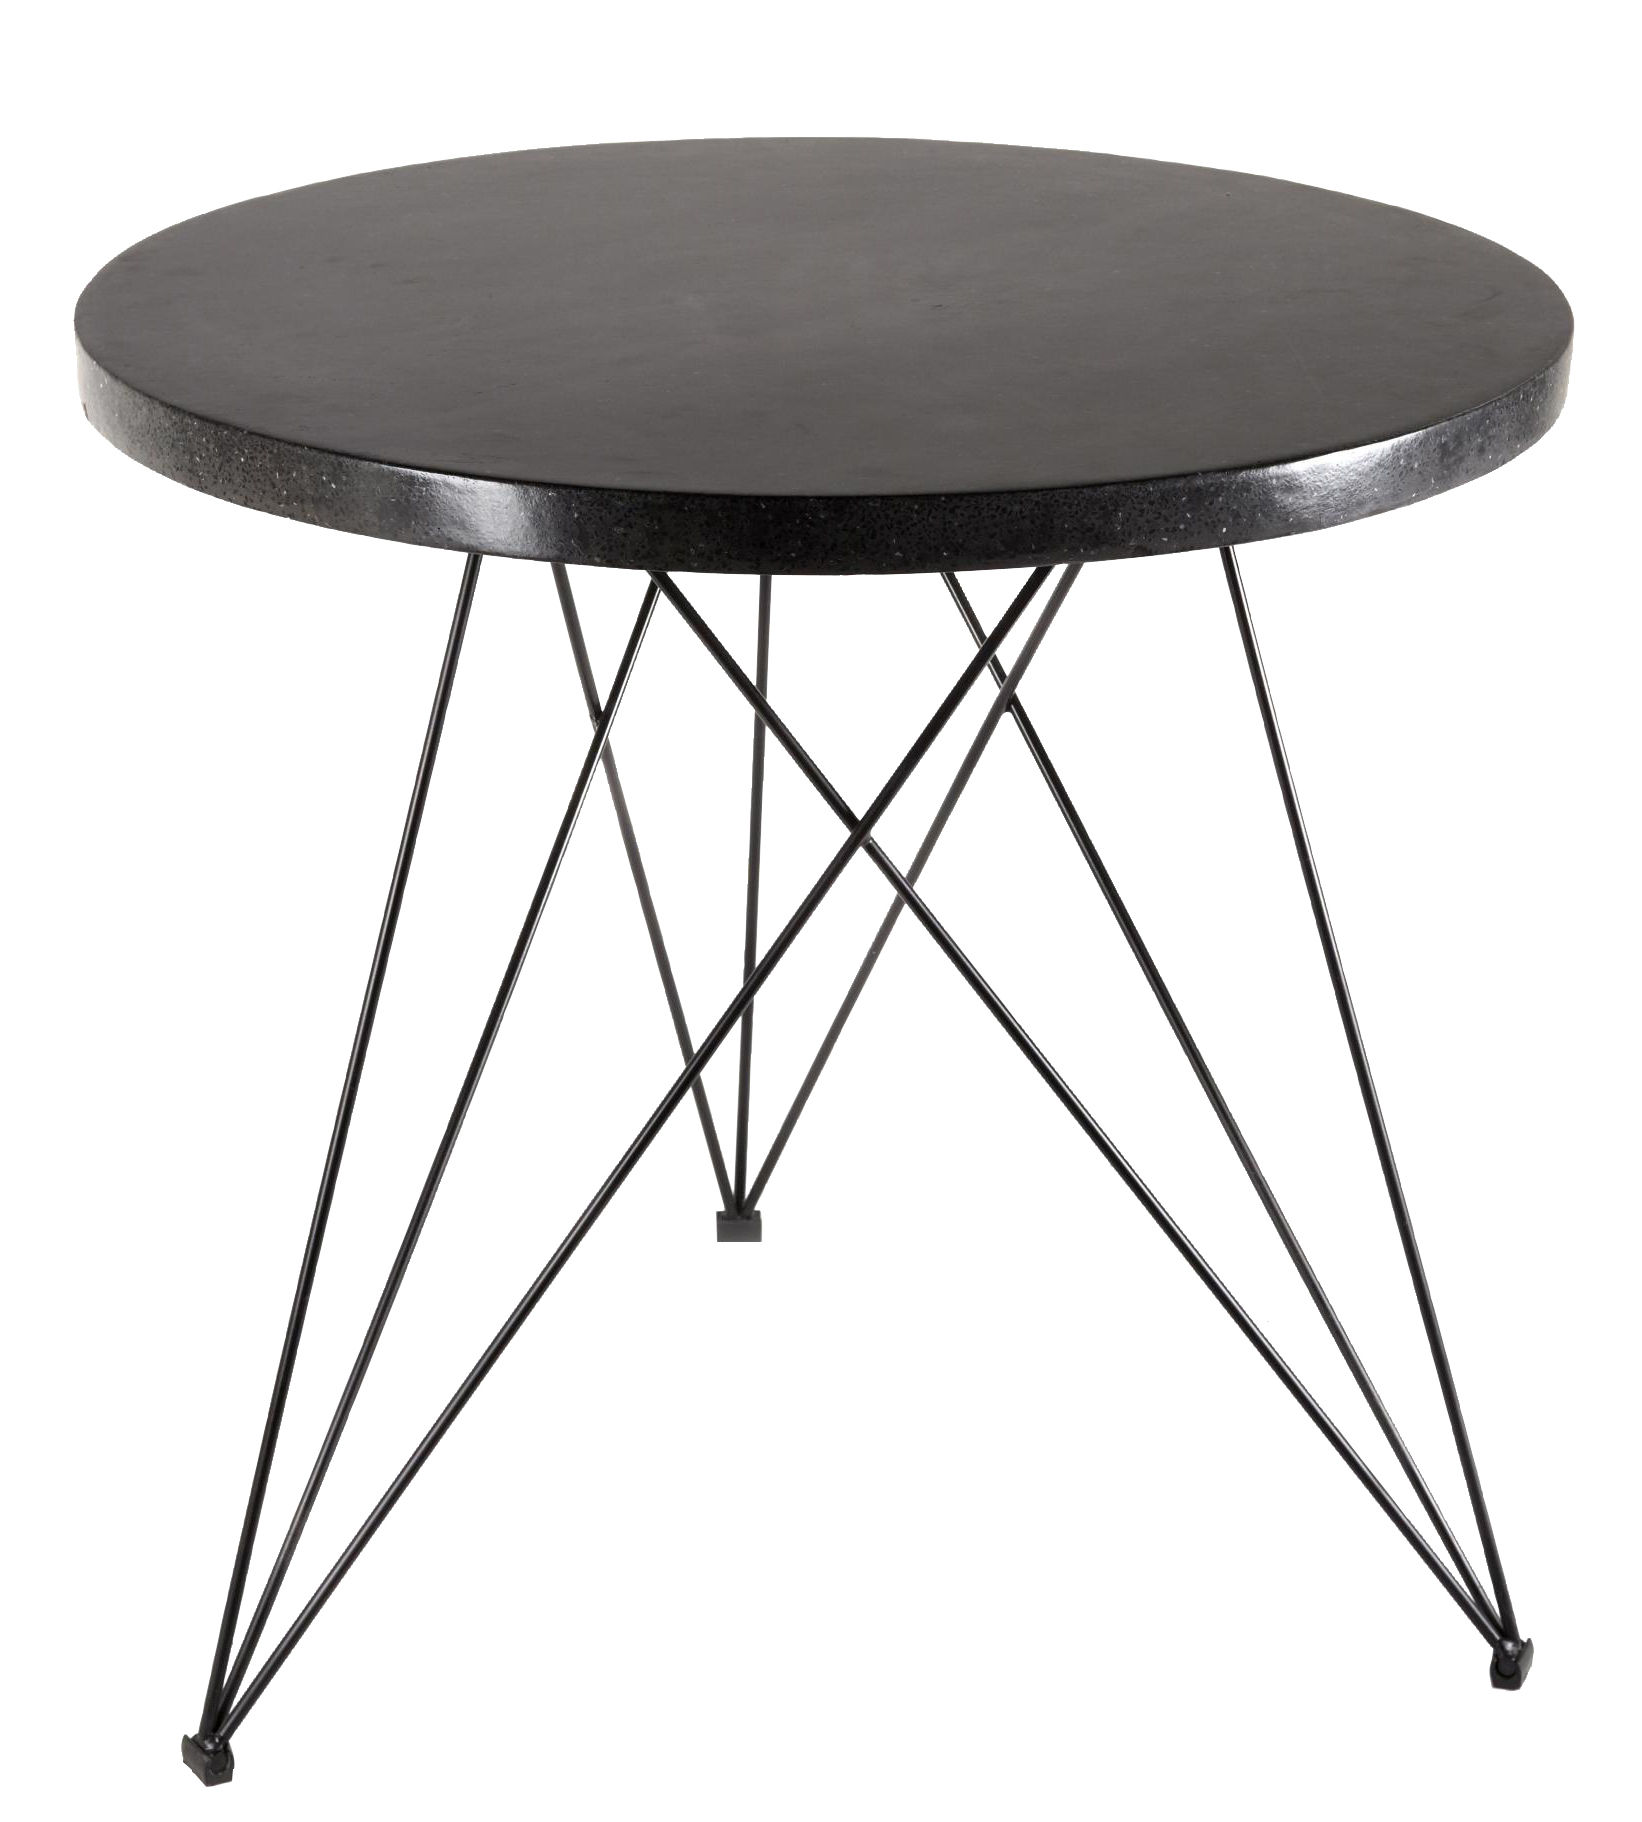 Furniture - Dining Tables - Sticchite Round table - Terrazzo & Metal - Ø 80 x H 77 cm by Serax - Black - Painted iron, Terrazzo